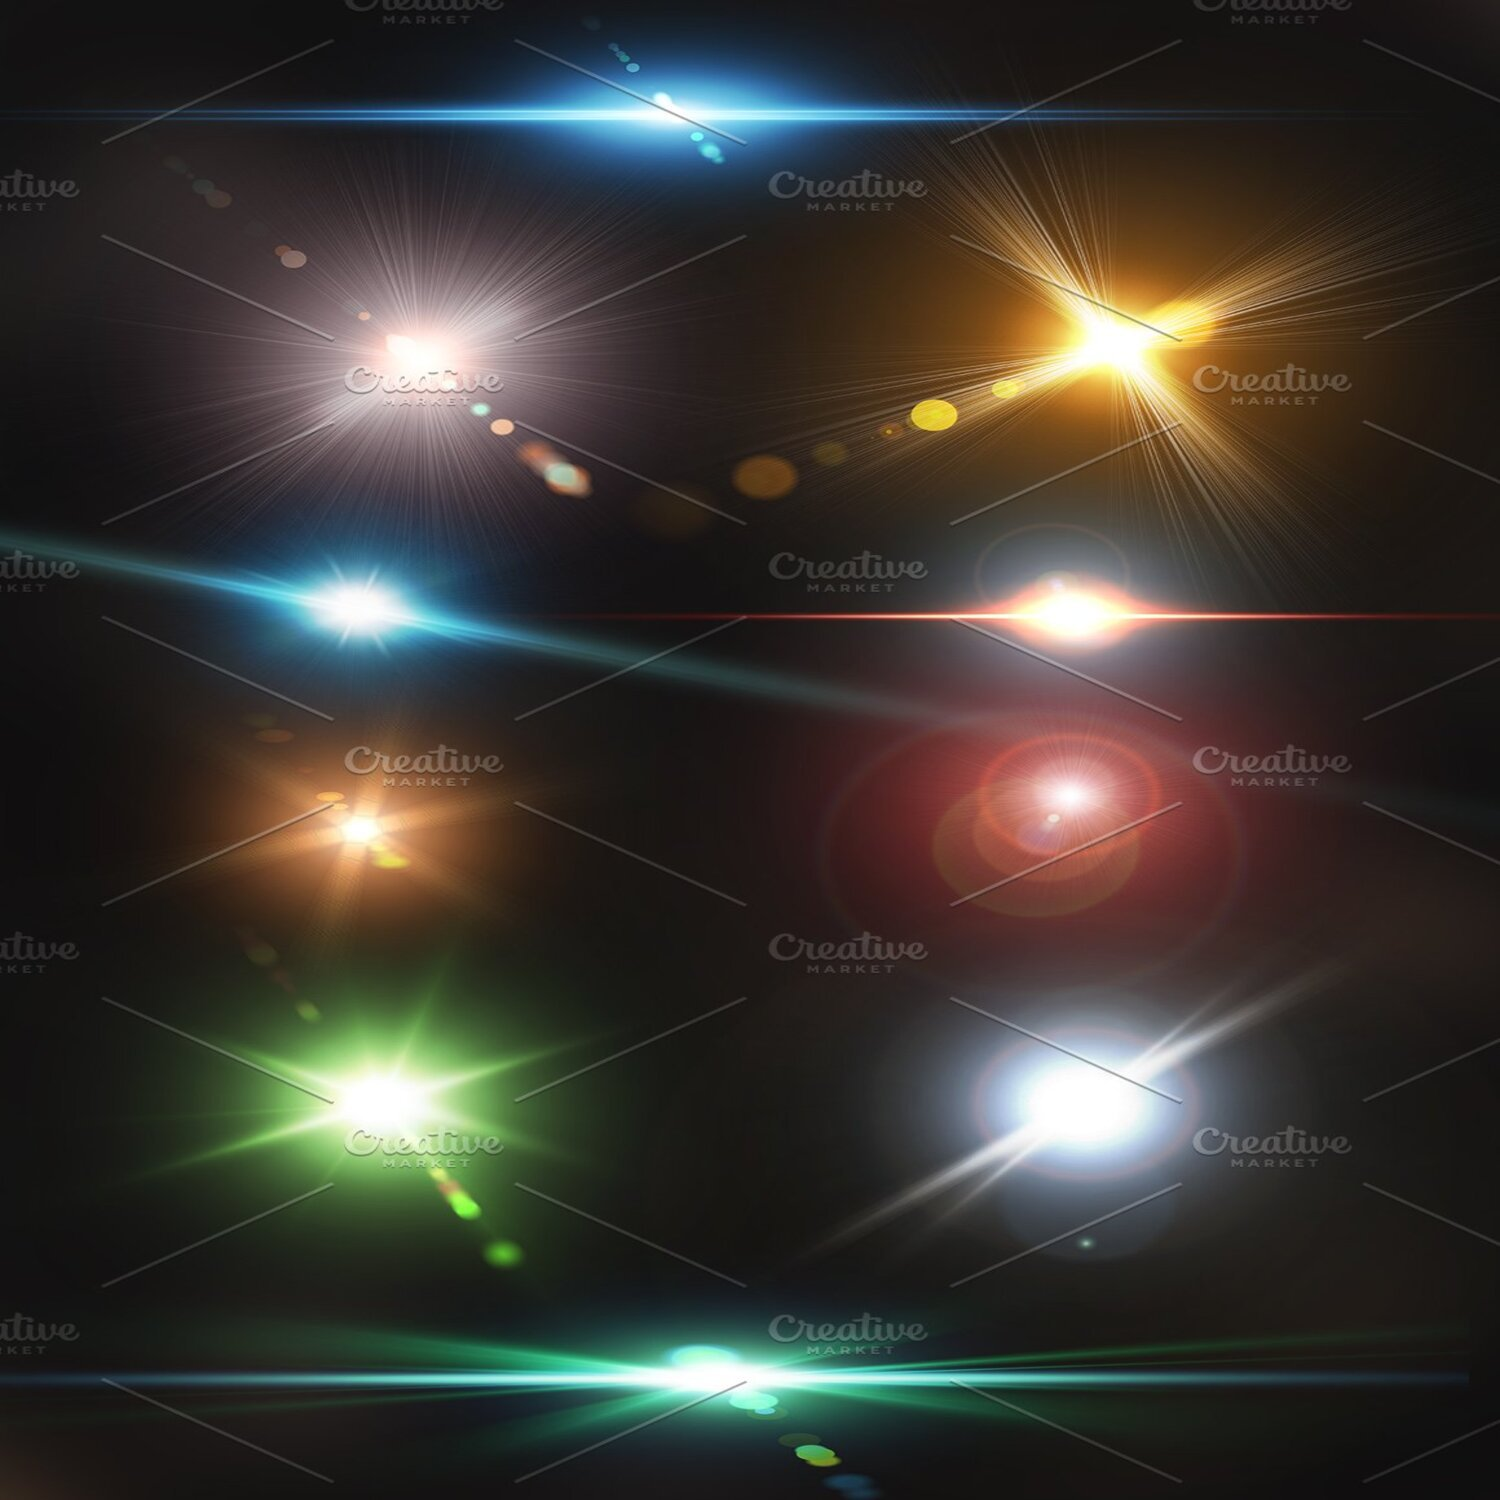 Optical Lens Flares Pack 2 cover image.